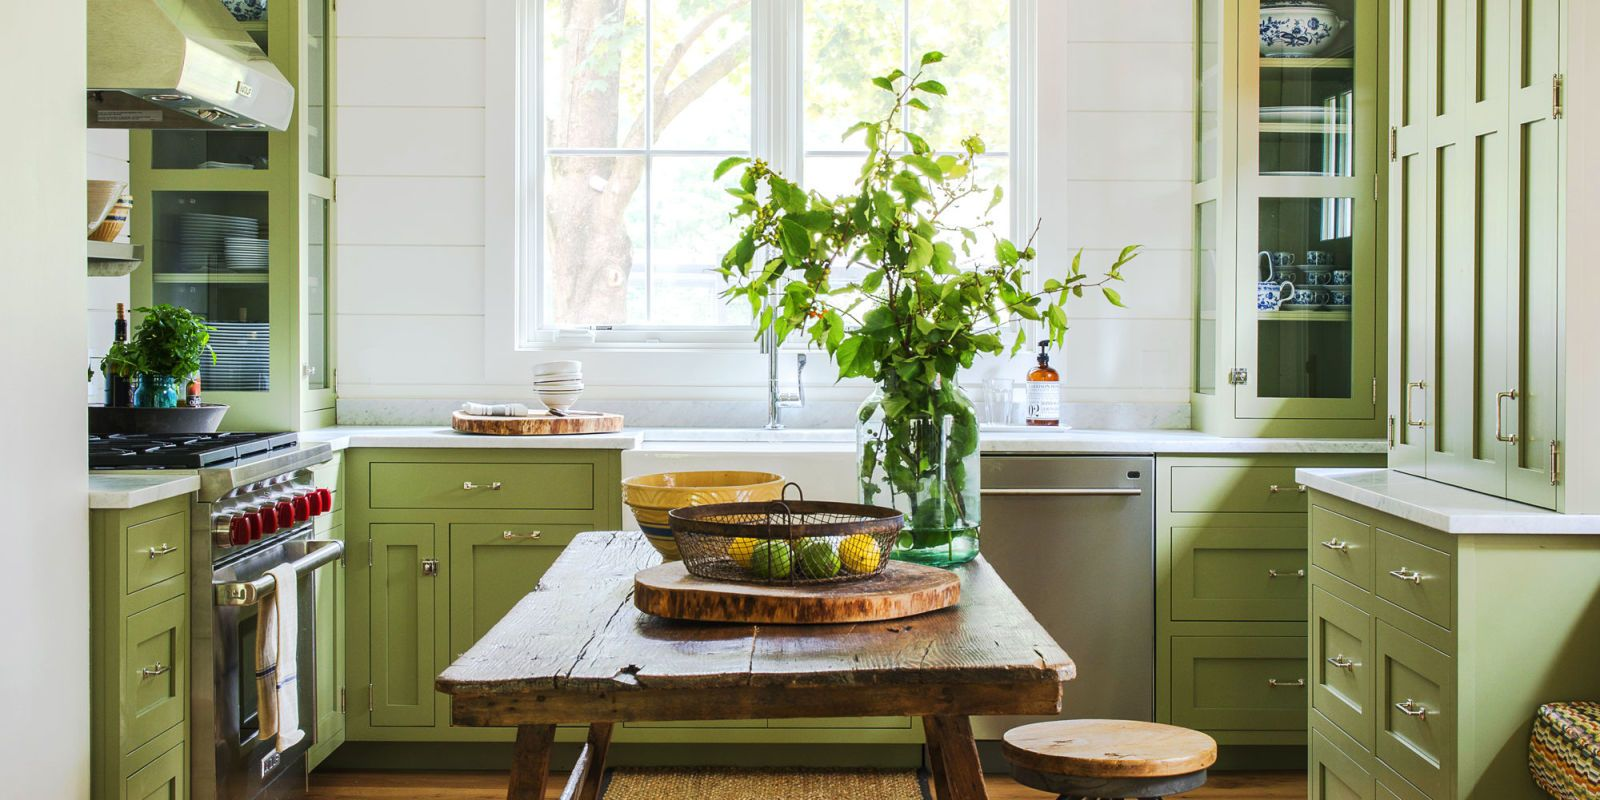 mistakes you make painting cabinets diy painted kitchen cabinets rh goodhousekeeping com